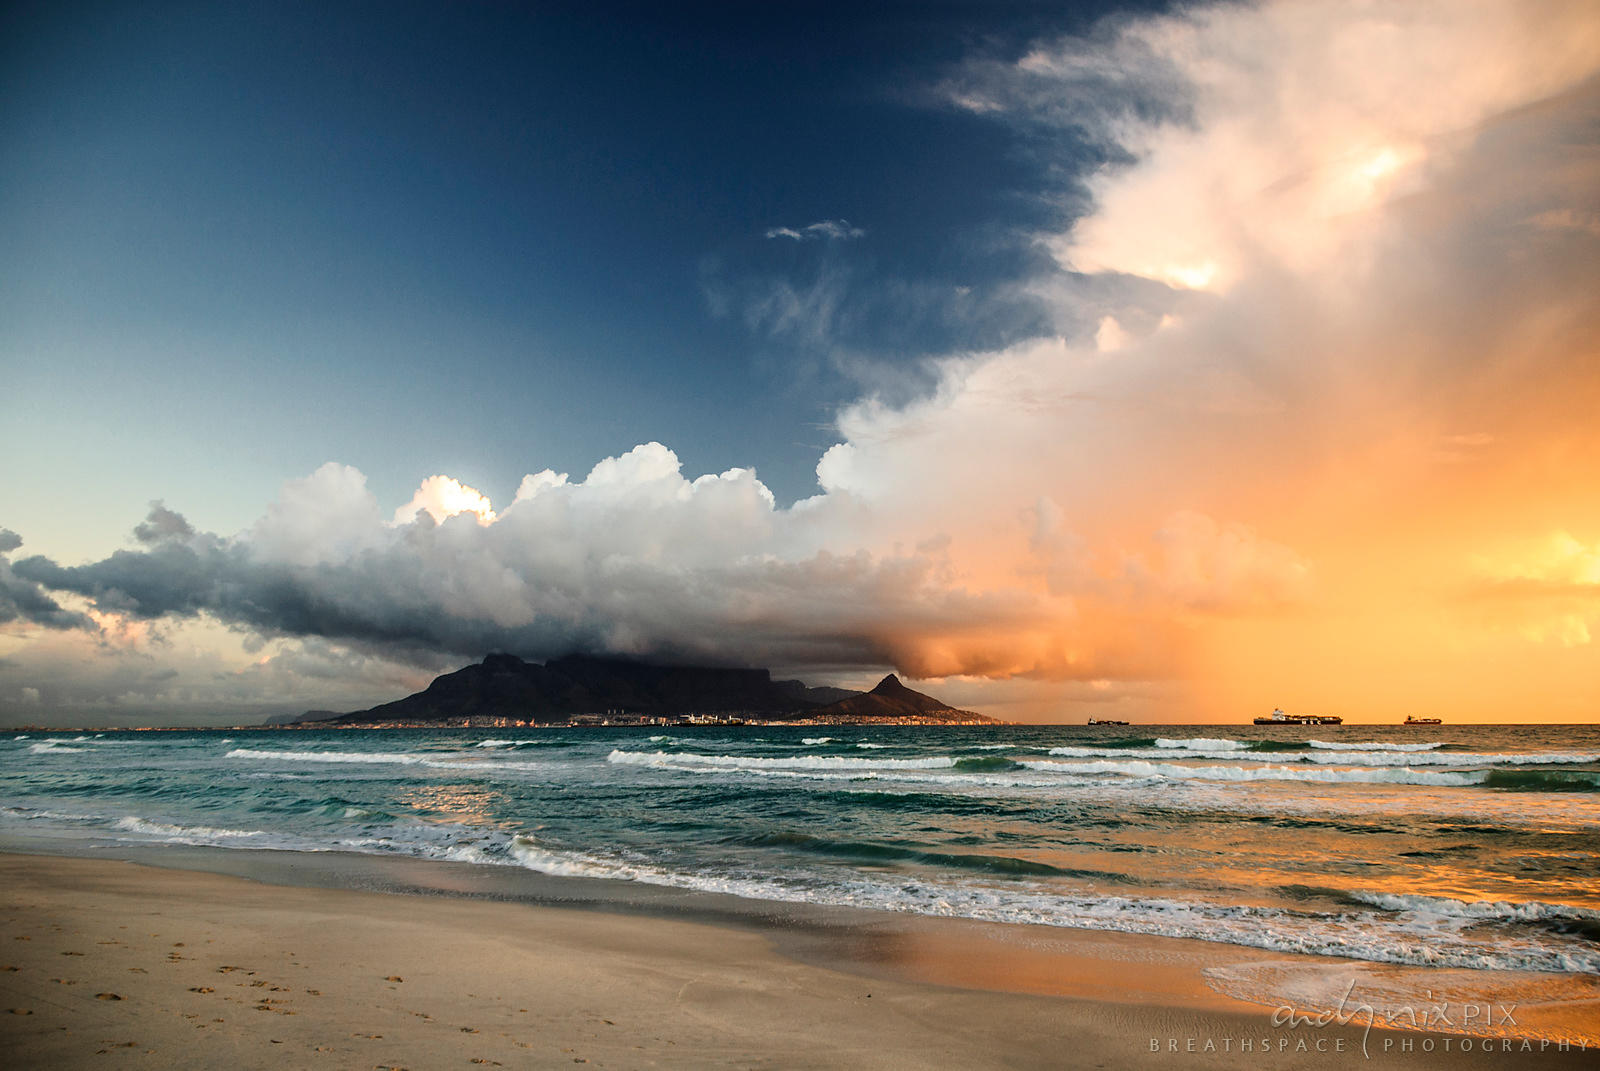 Last rays of sun light up storm clouds gathering over Table Mountain.